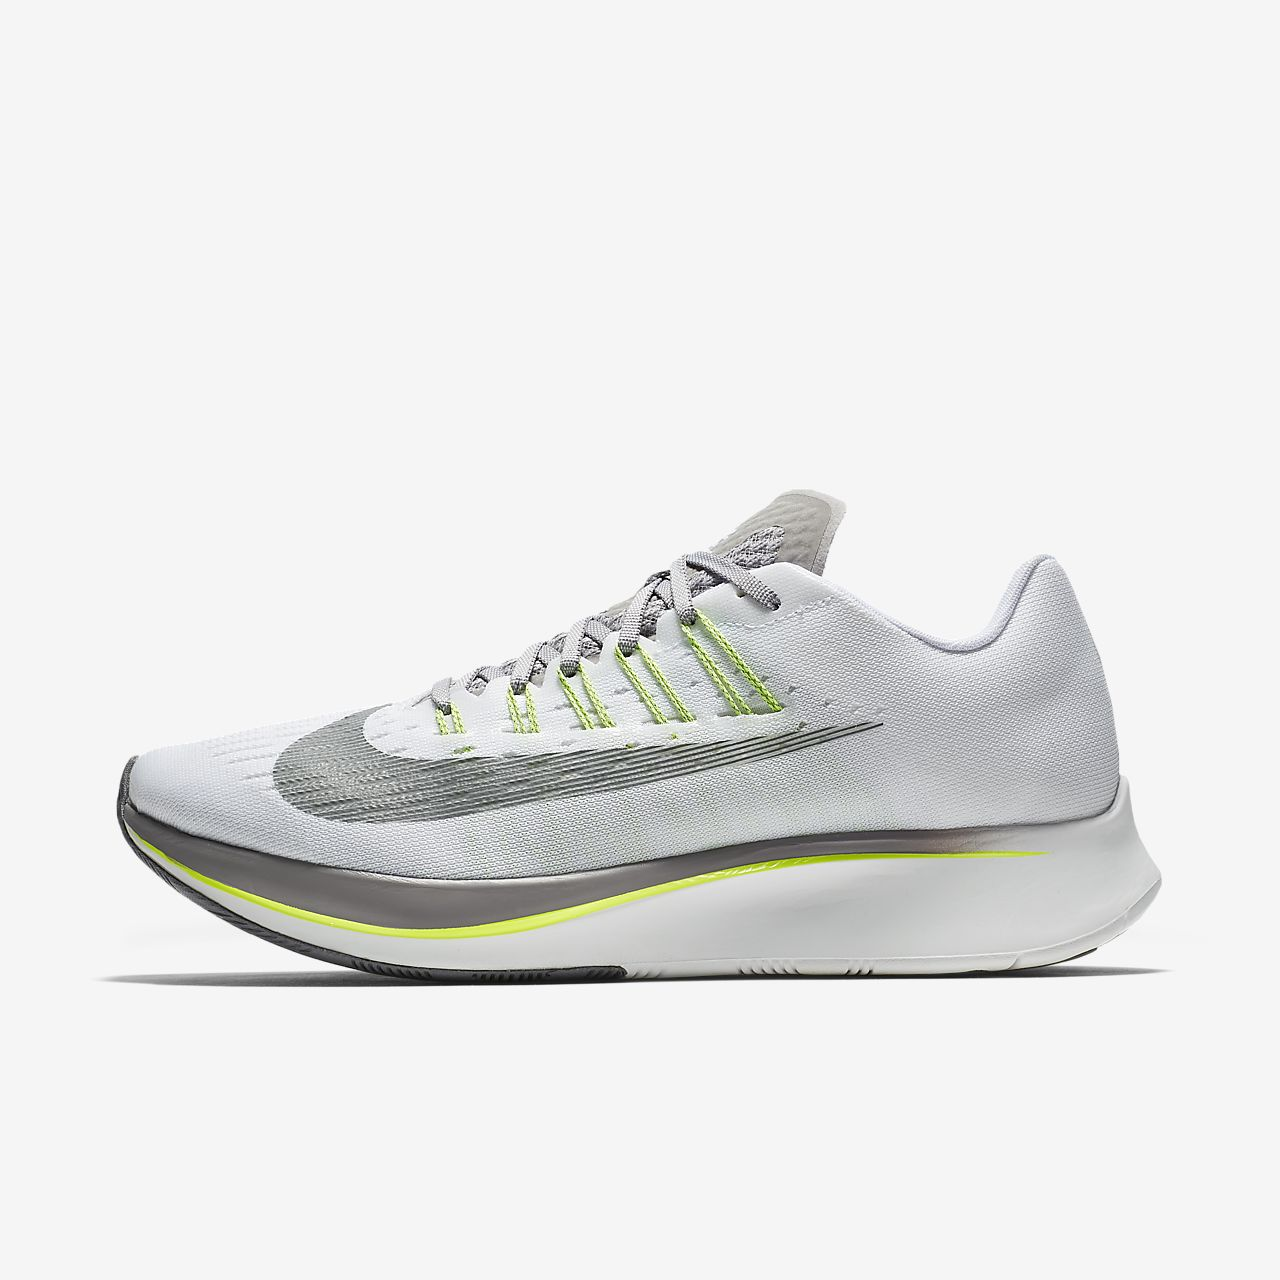 sports shoes a7628 7d1e3 ... Nike Zoom Fly Men s Running Shoe